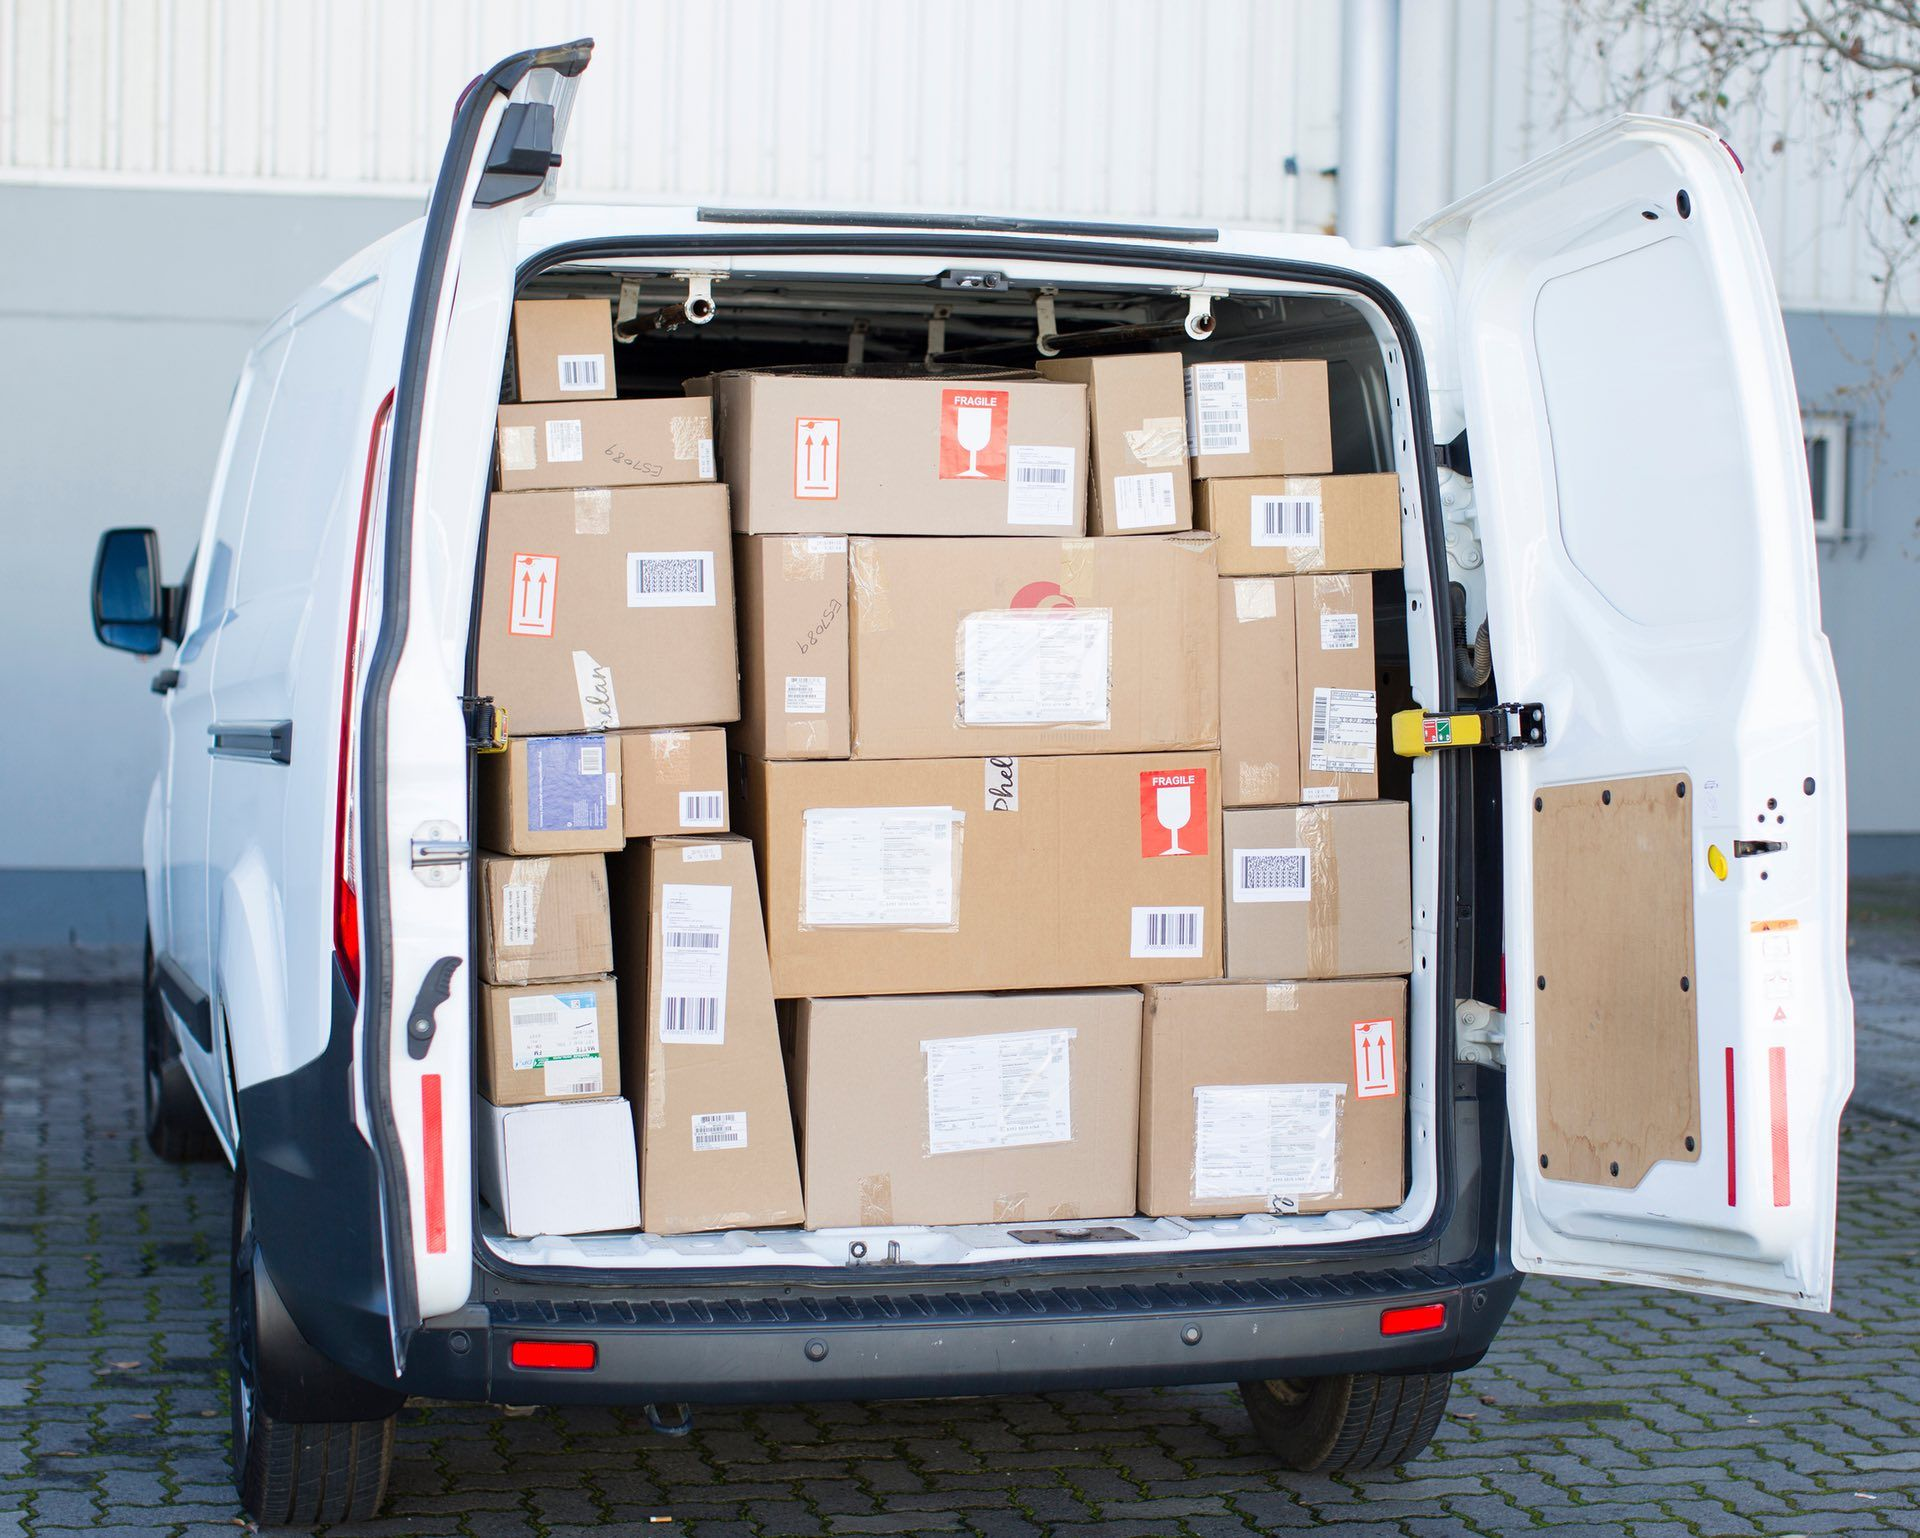 Pin on Parcels, Packaging & Delivery